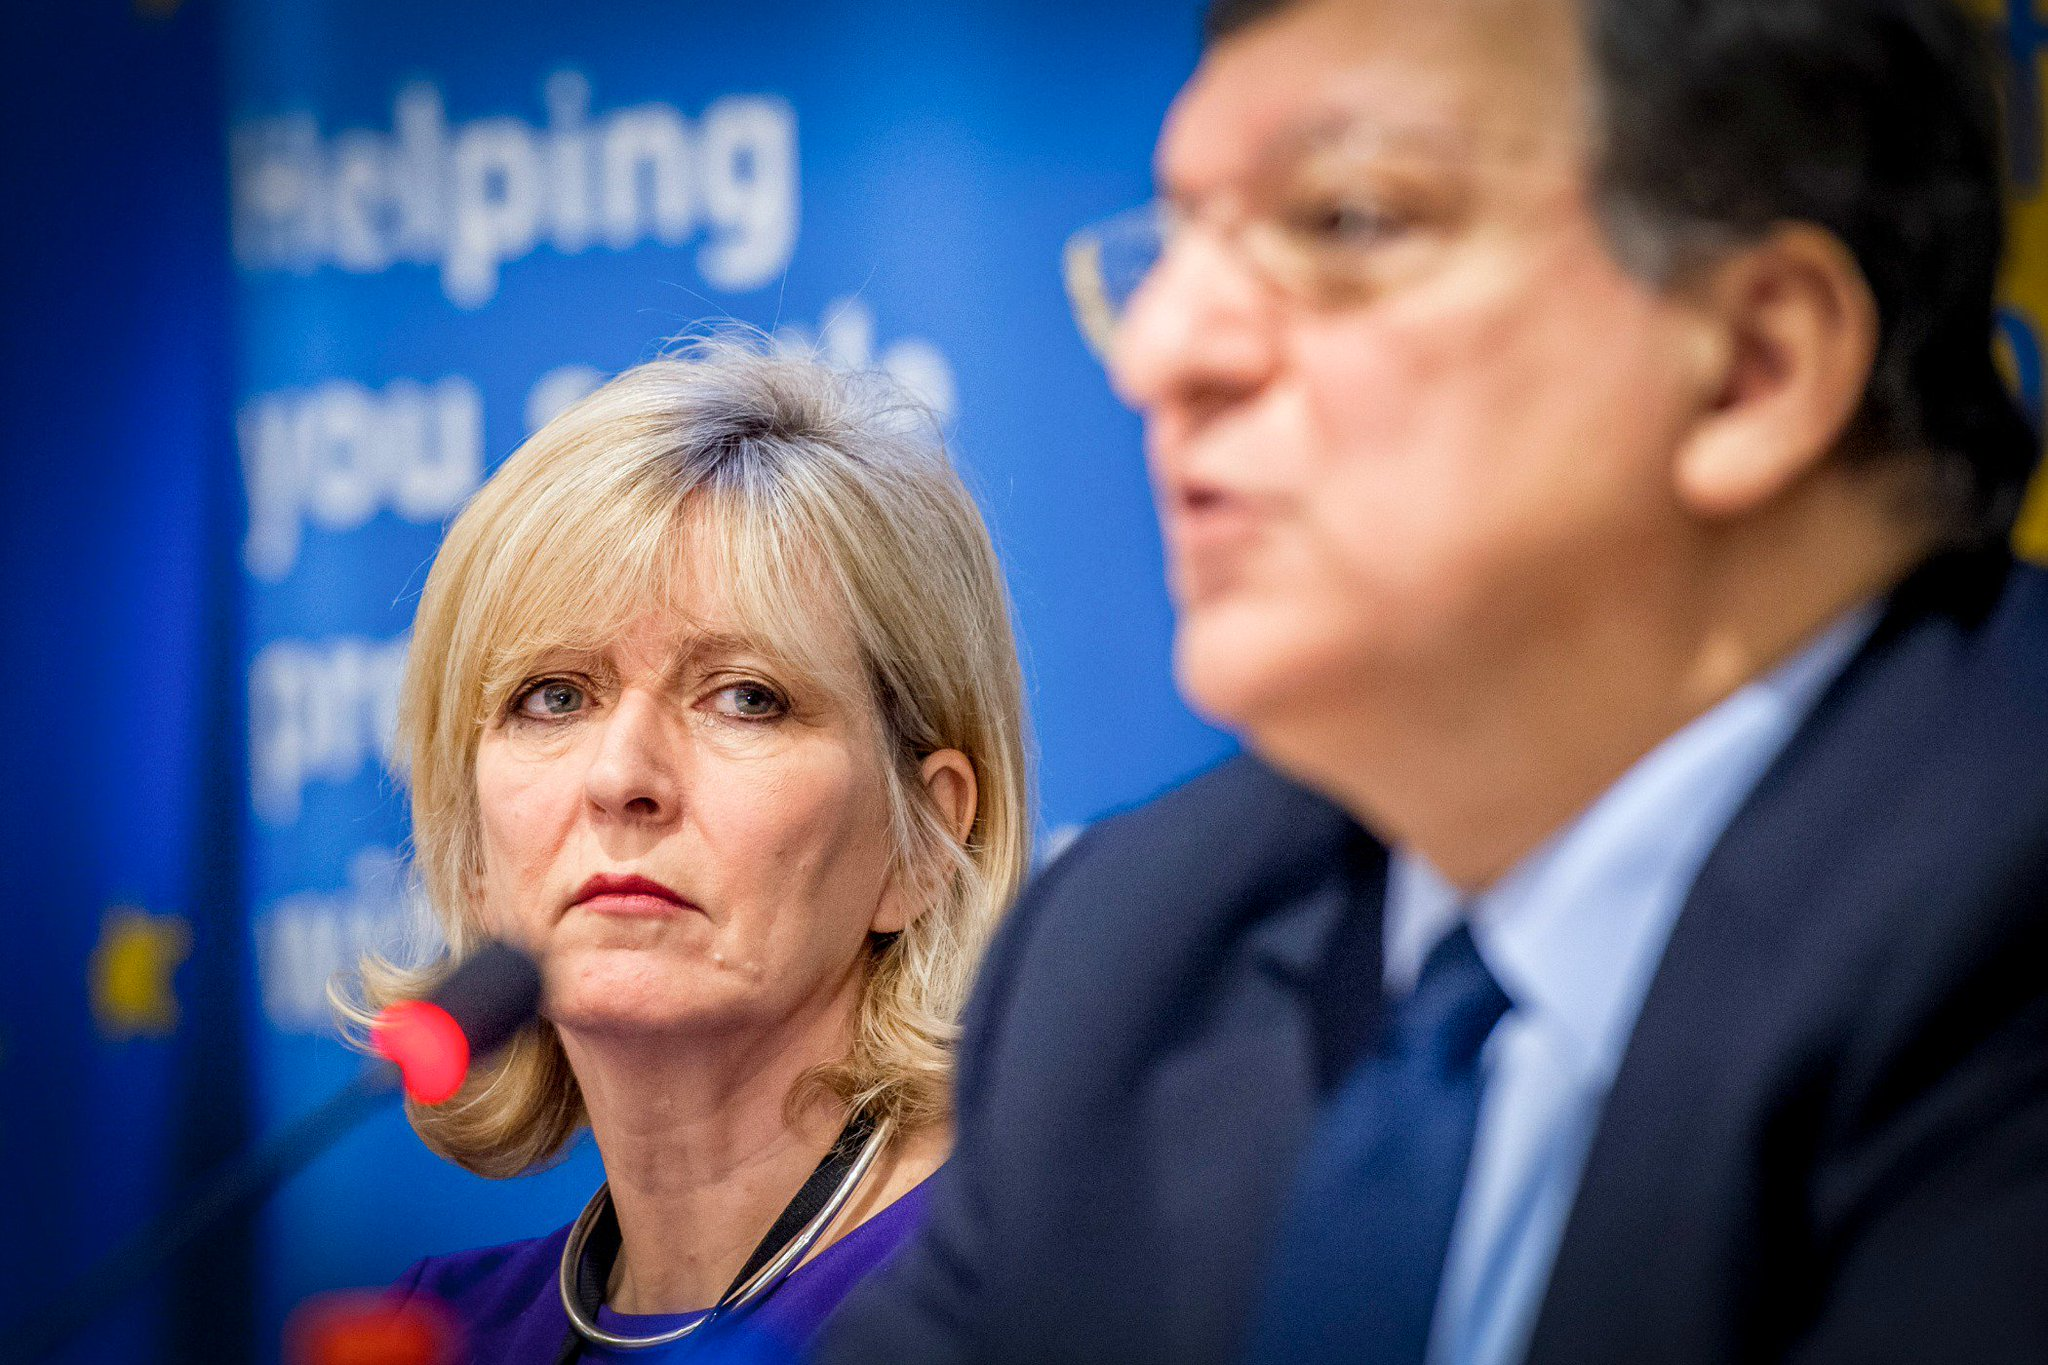 Thumbnail for Ombudsman calls on President Juncker to clarify position on Barroso appointment